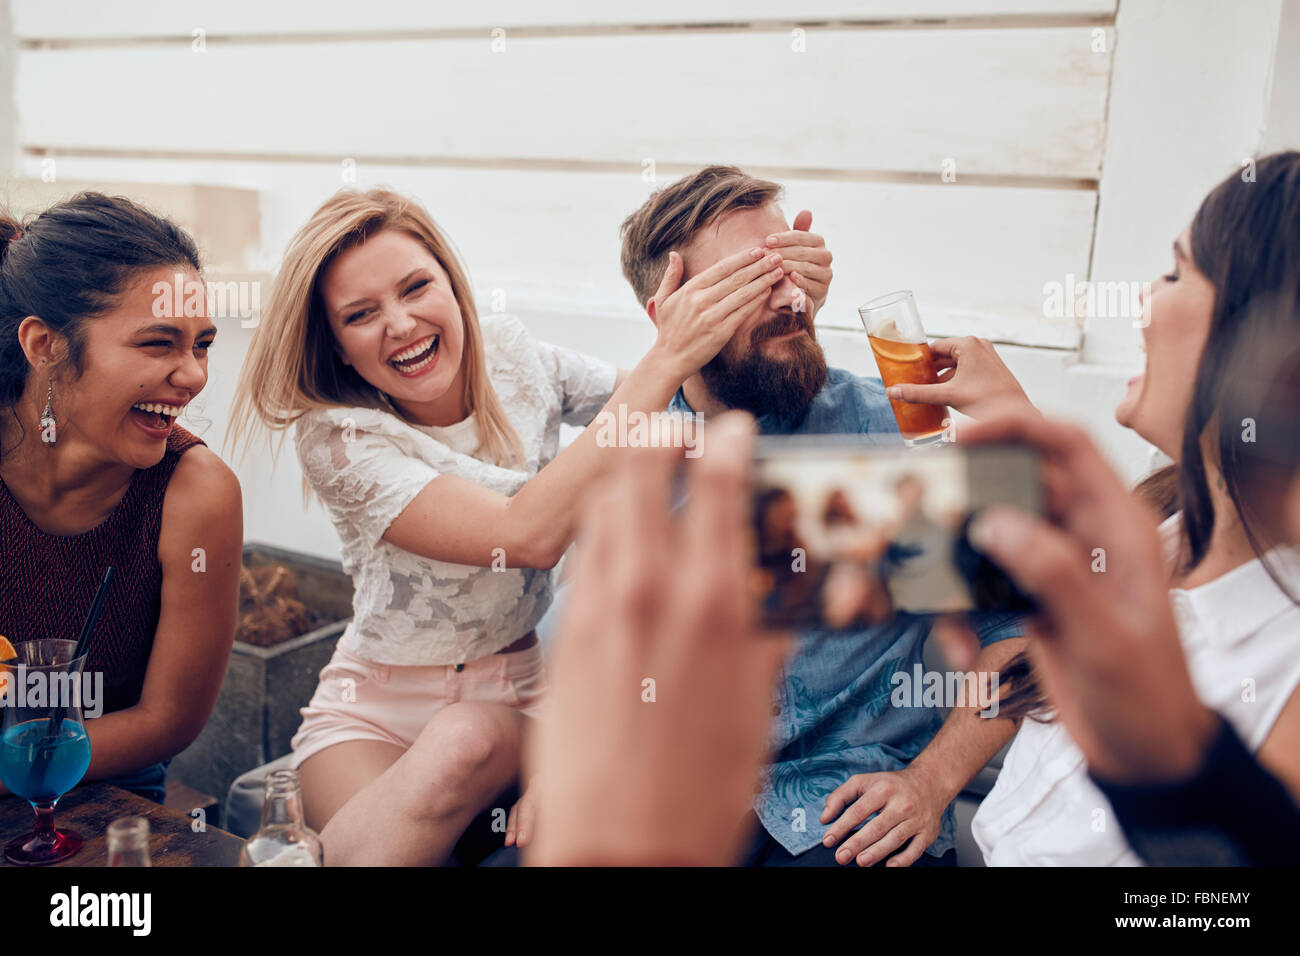 Group of friends having fun at a party with man taking a photo on a smart phone. Young people enjoying a party together. Stock Photo